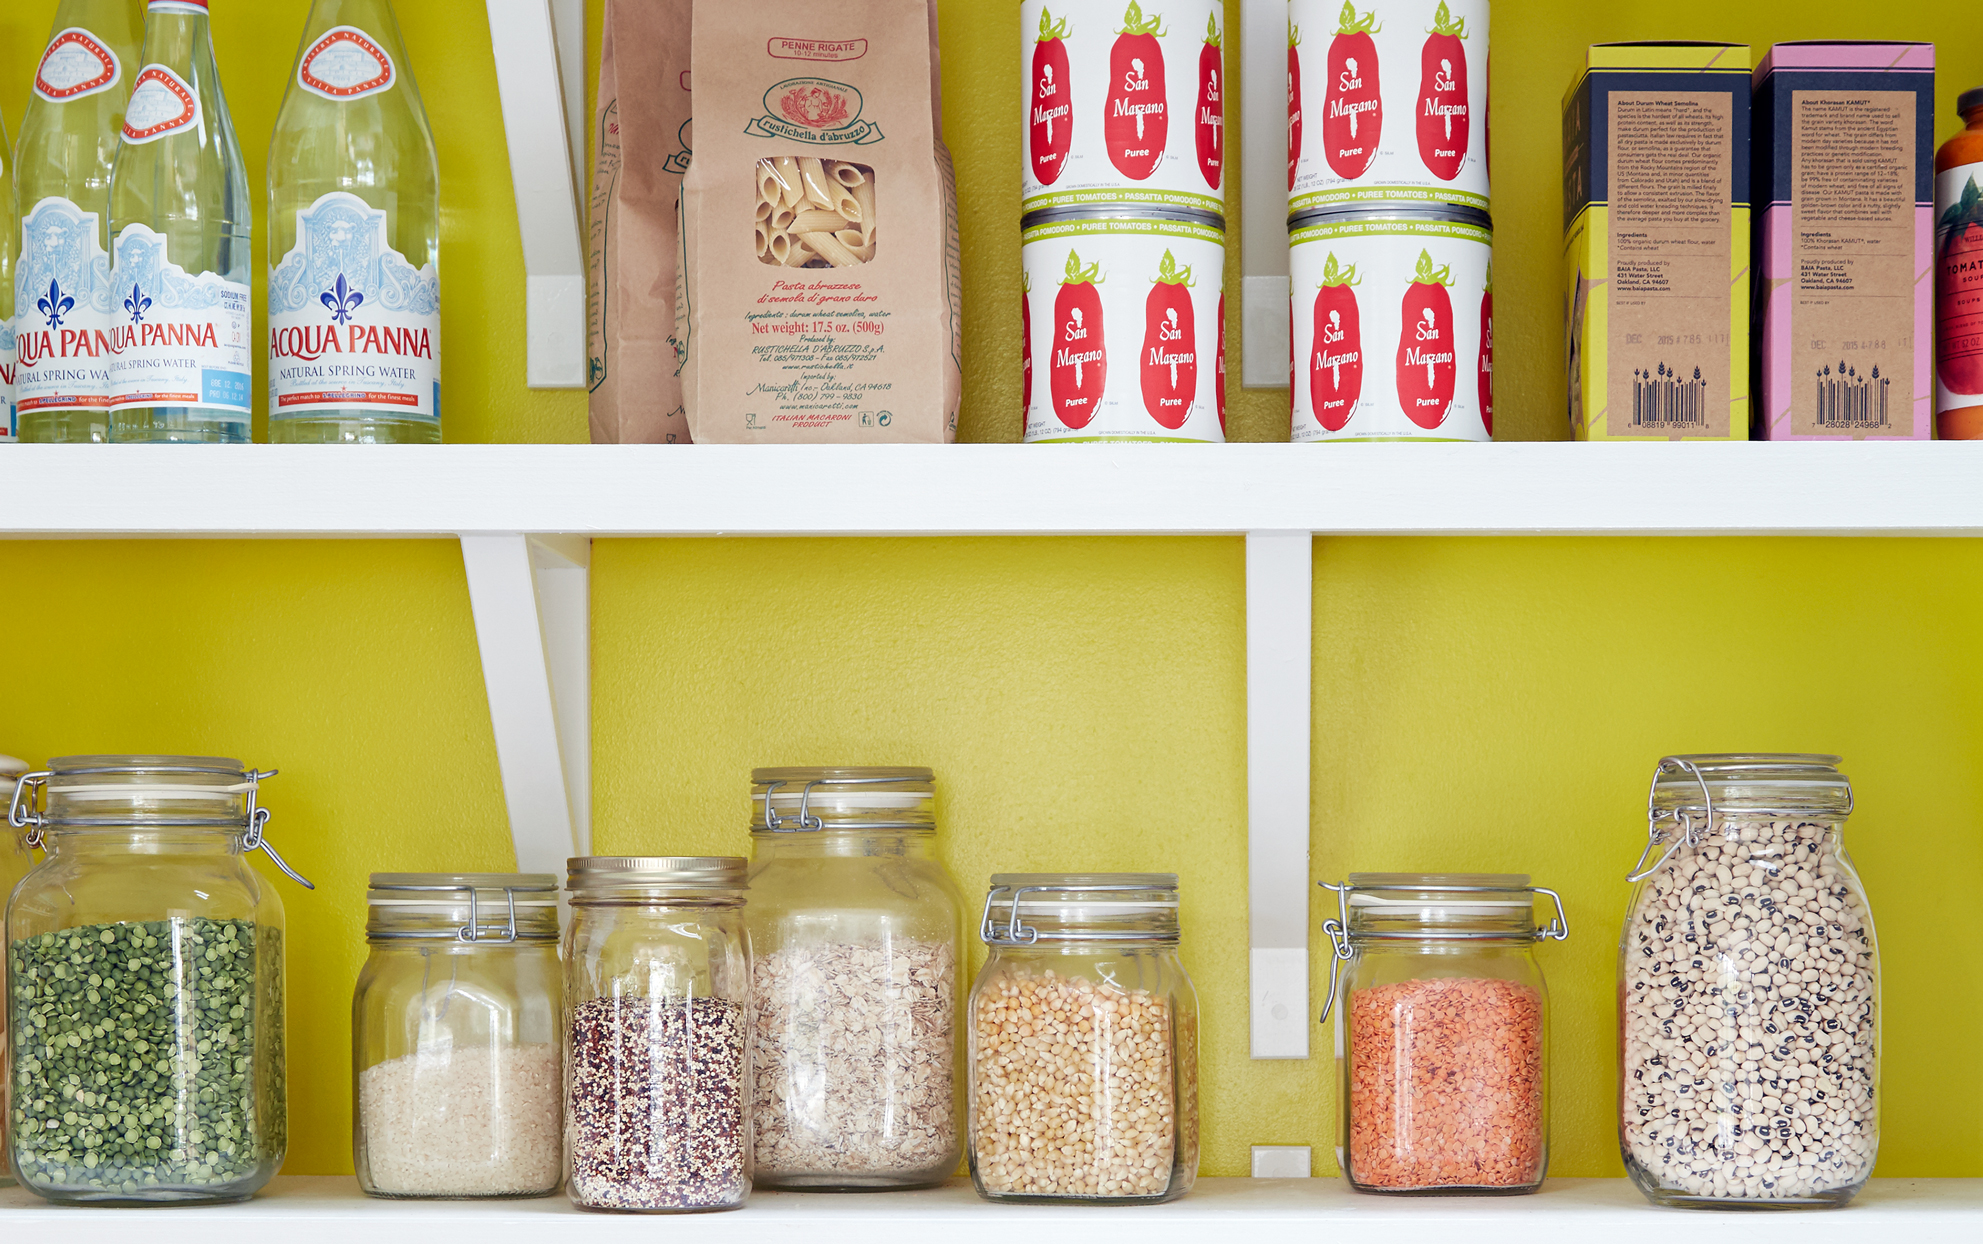 pantry items with a yellow background